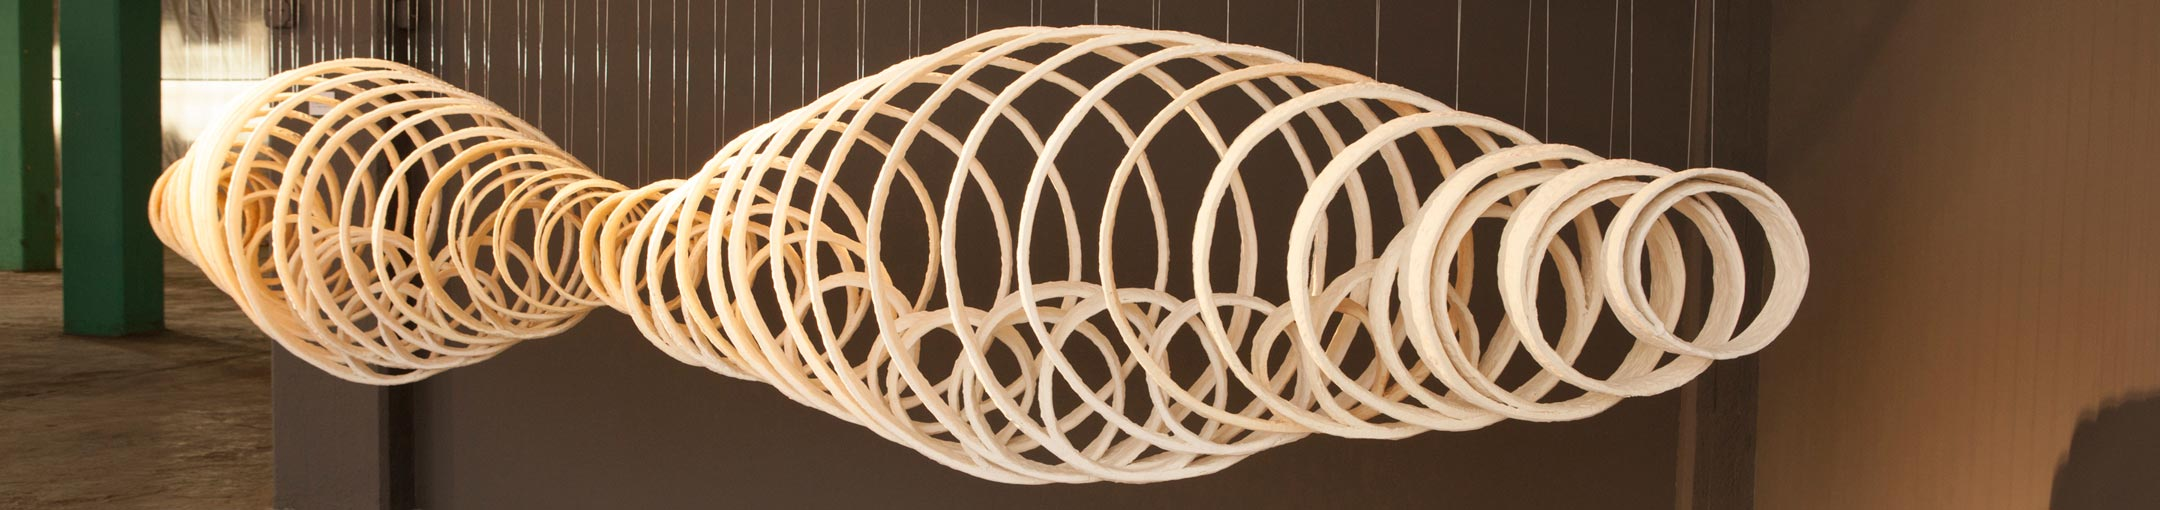 A hanging sculpture of concentric ceramic rings